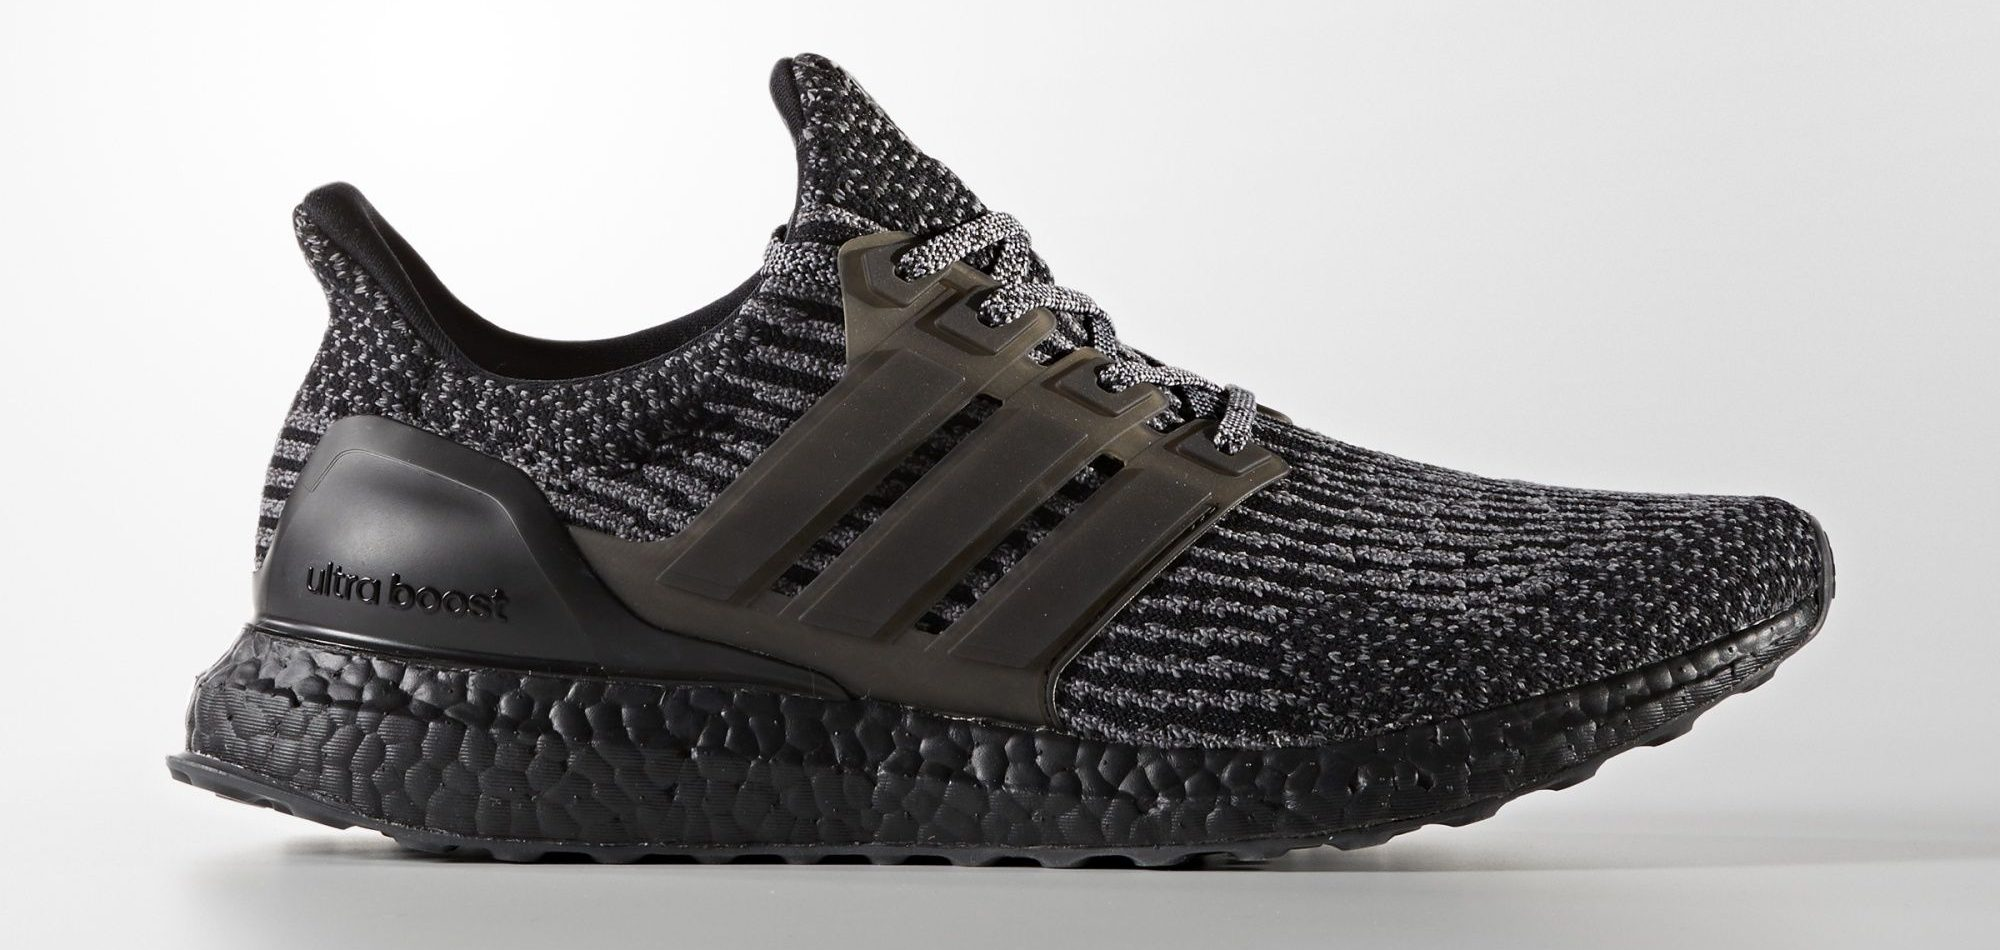 best website 6021c 2c9d0 The adidas UltraBoost 3.0 Drops in Four Colorways - WearTesters